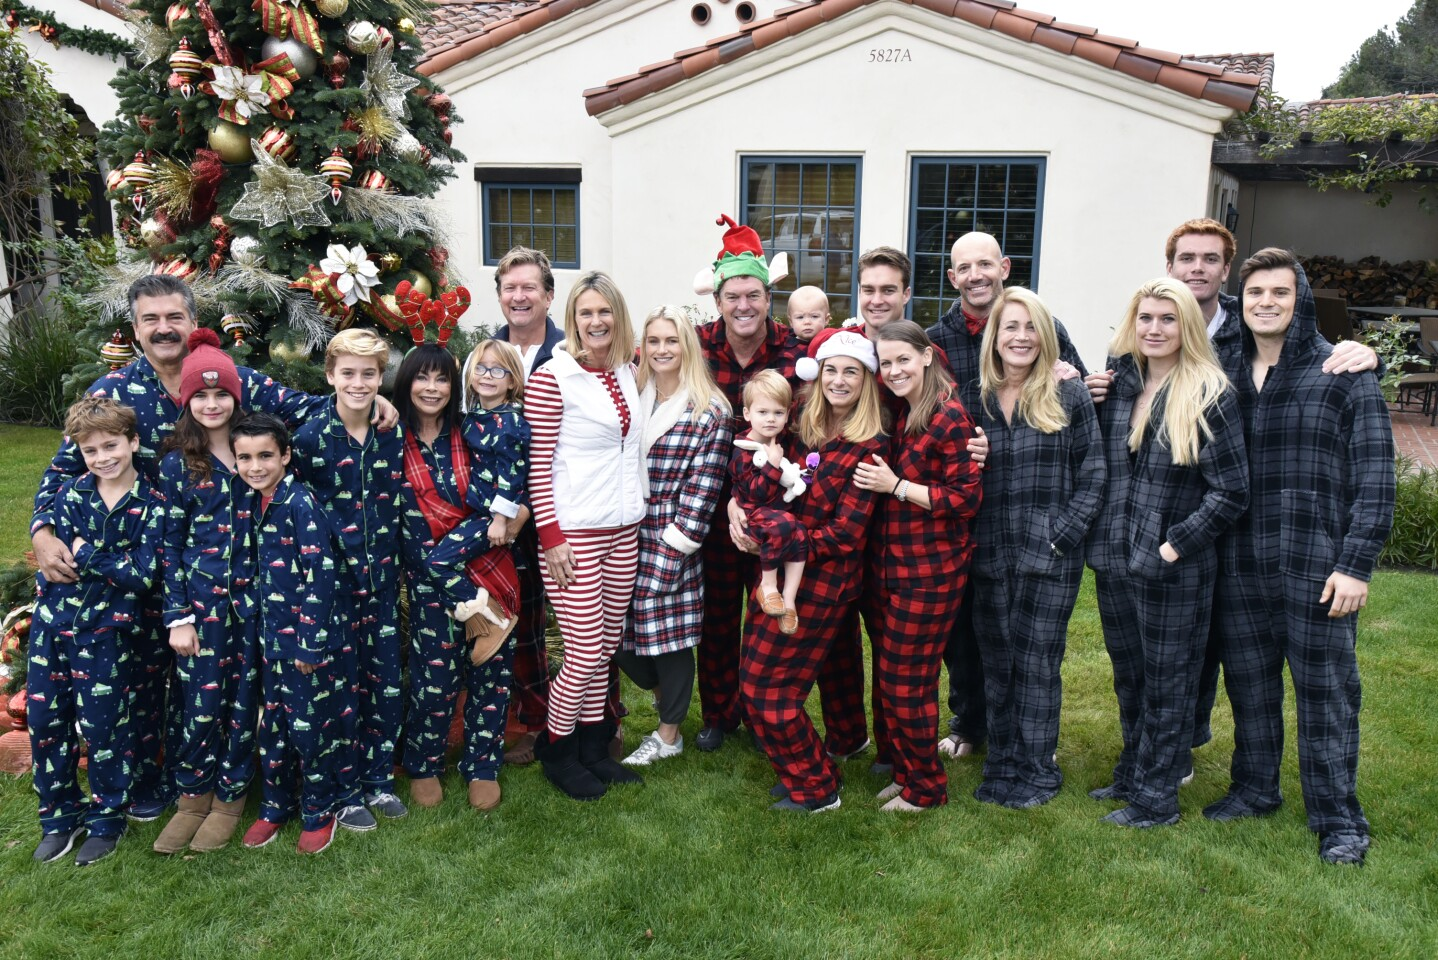 The Sides family, the Marks family, the Anderson and Hagestad families